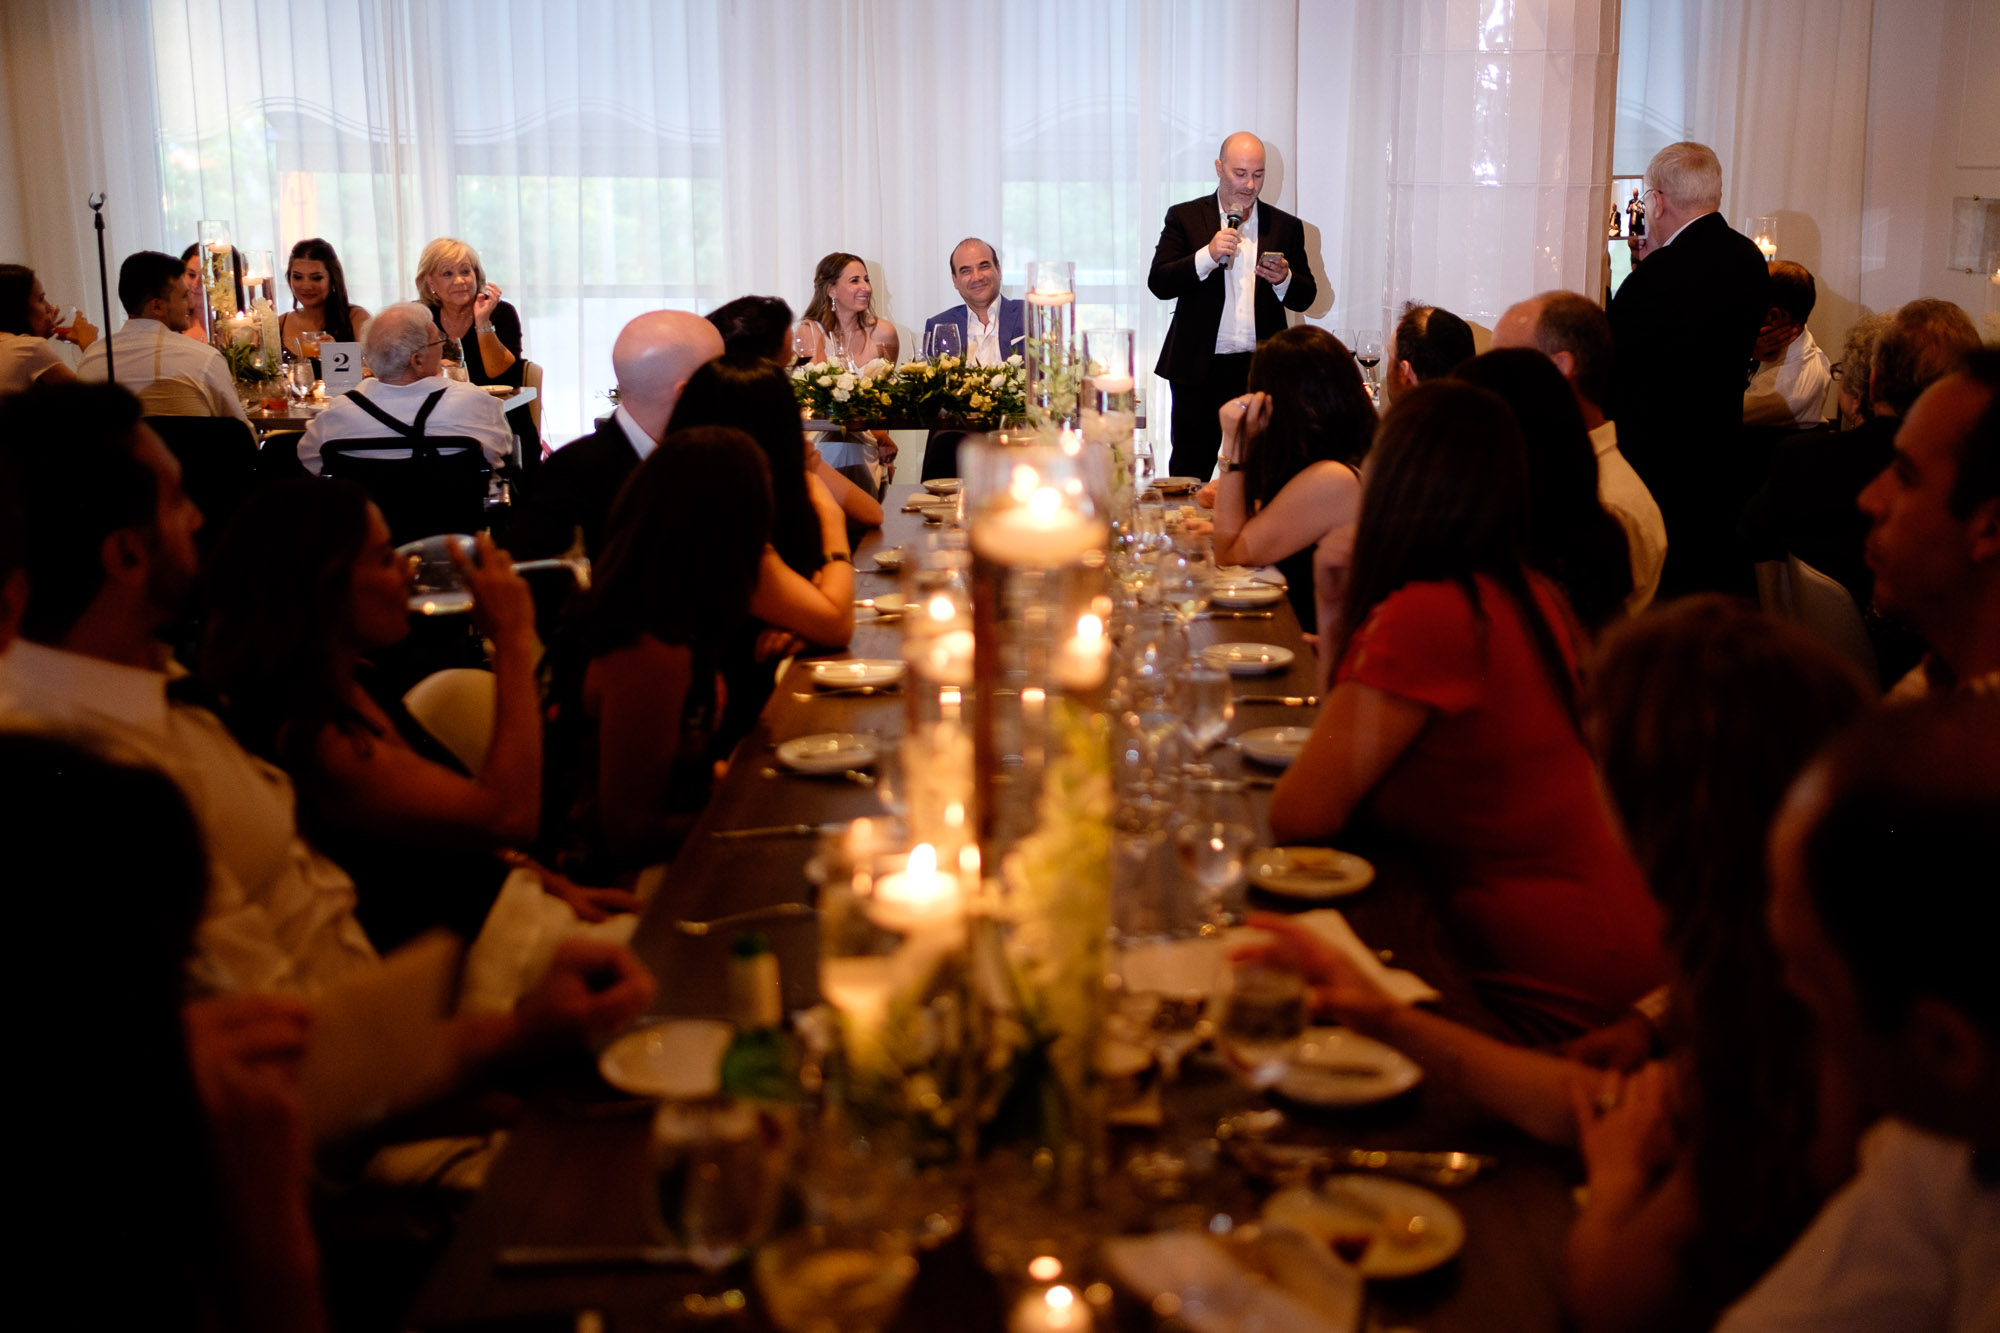 The bride and groom are toasted during their wedding reception at Sassafraz restaurant in Toronto's Yorkville neighbourhood.